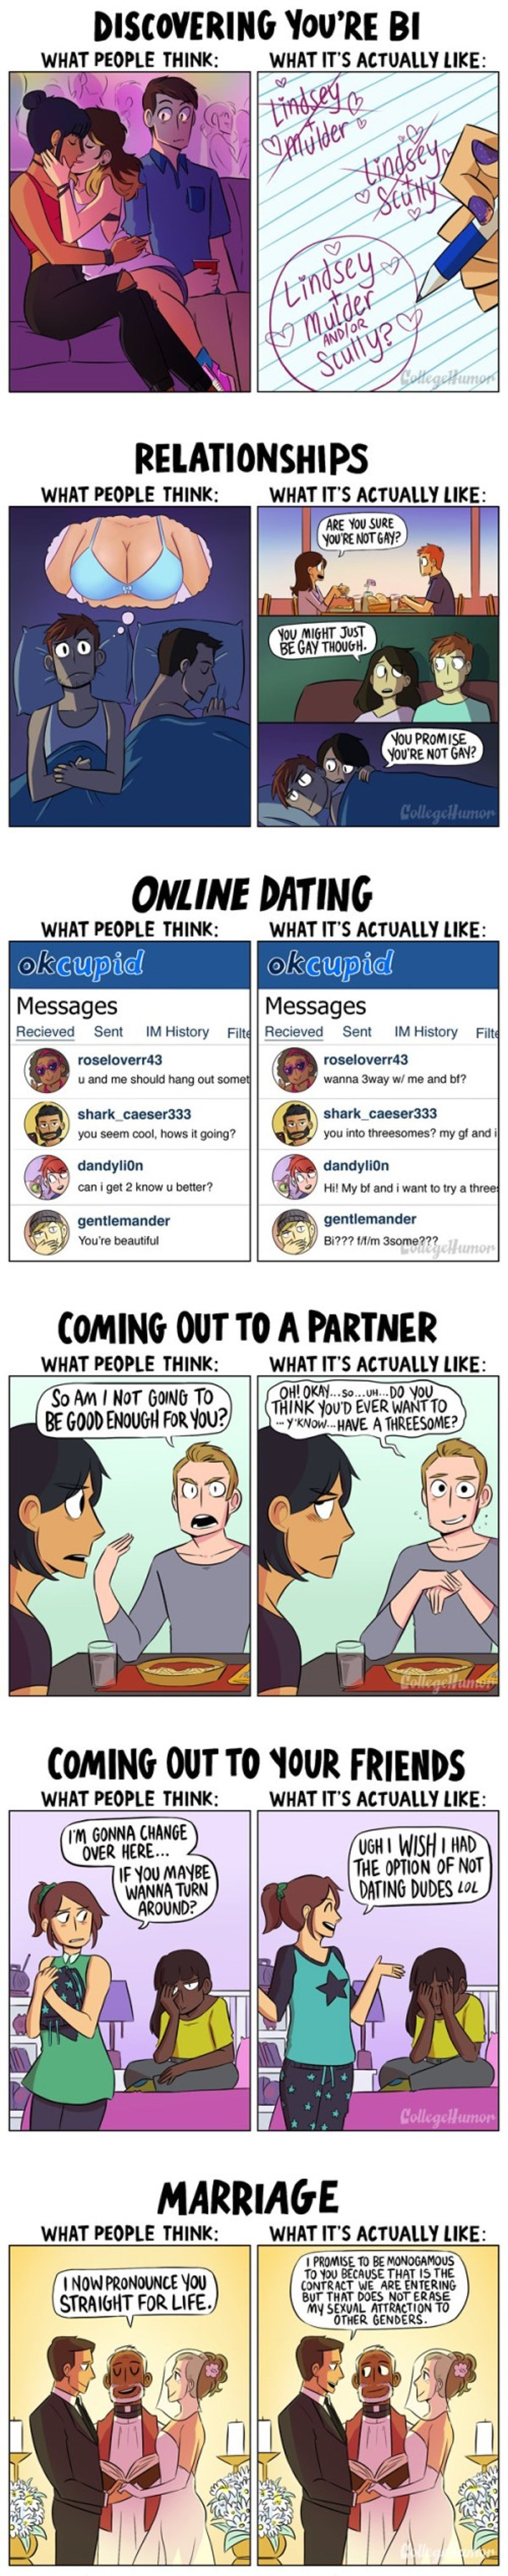 bisexual,dating,web comics,marriage,relationships